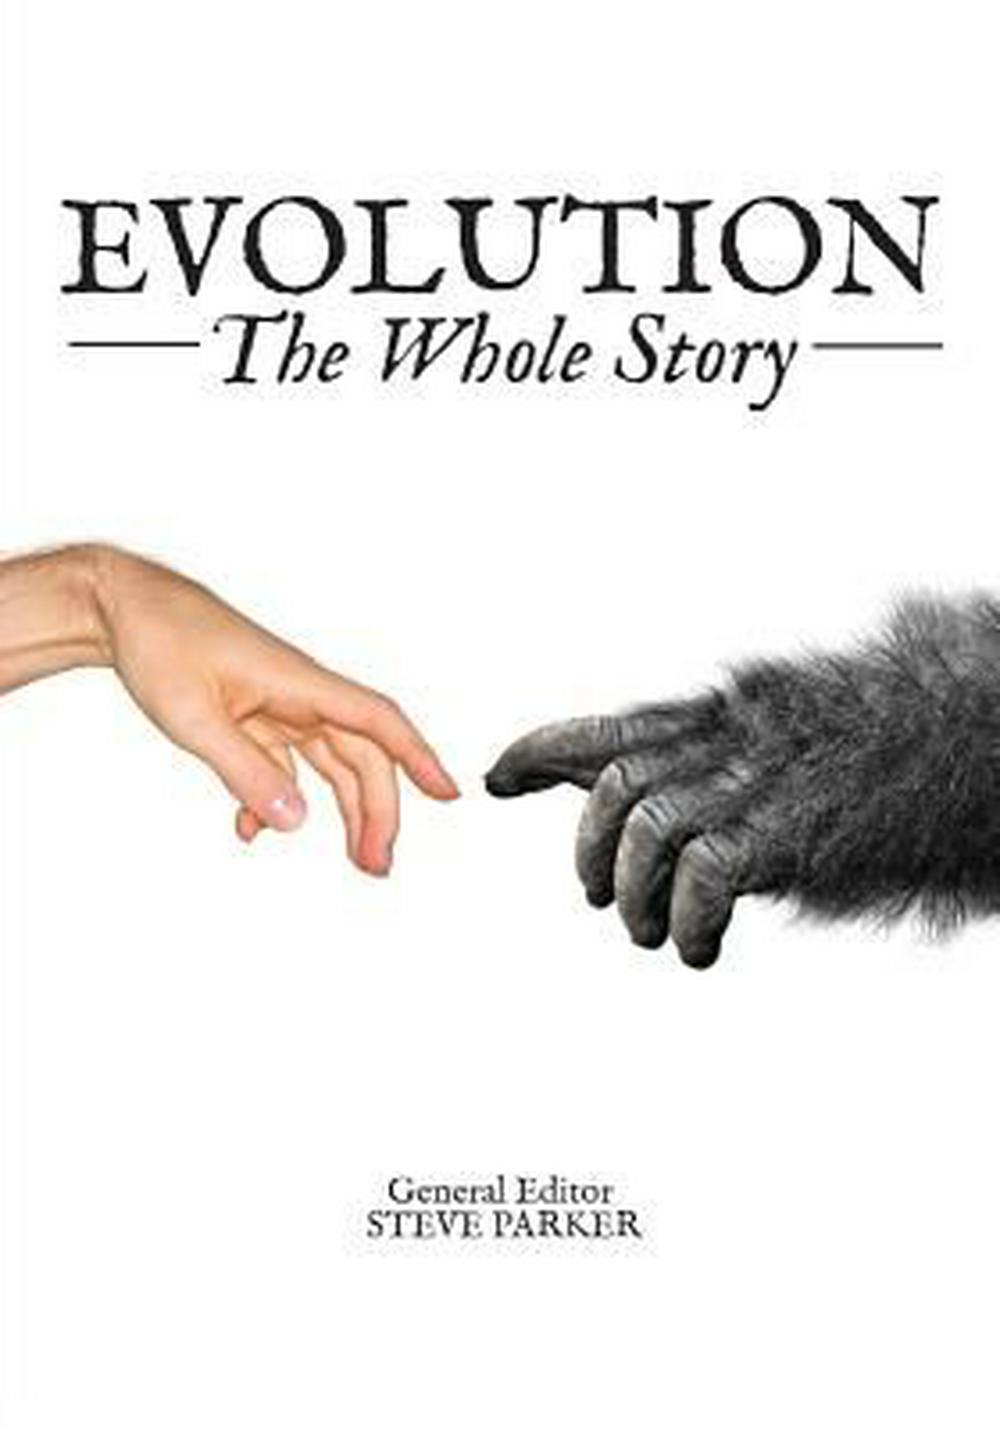 EvolutionThe Whole Story